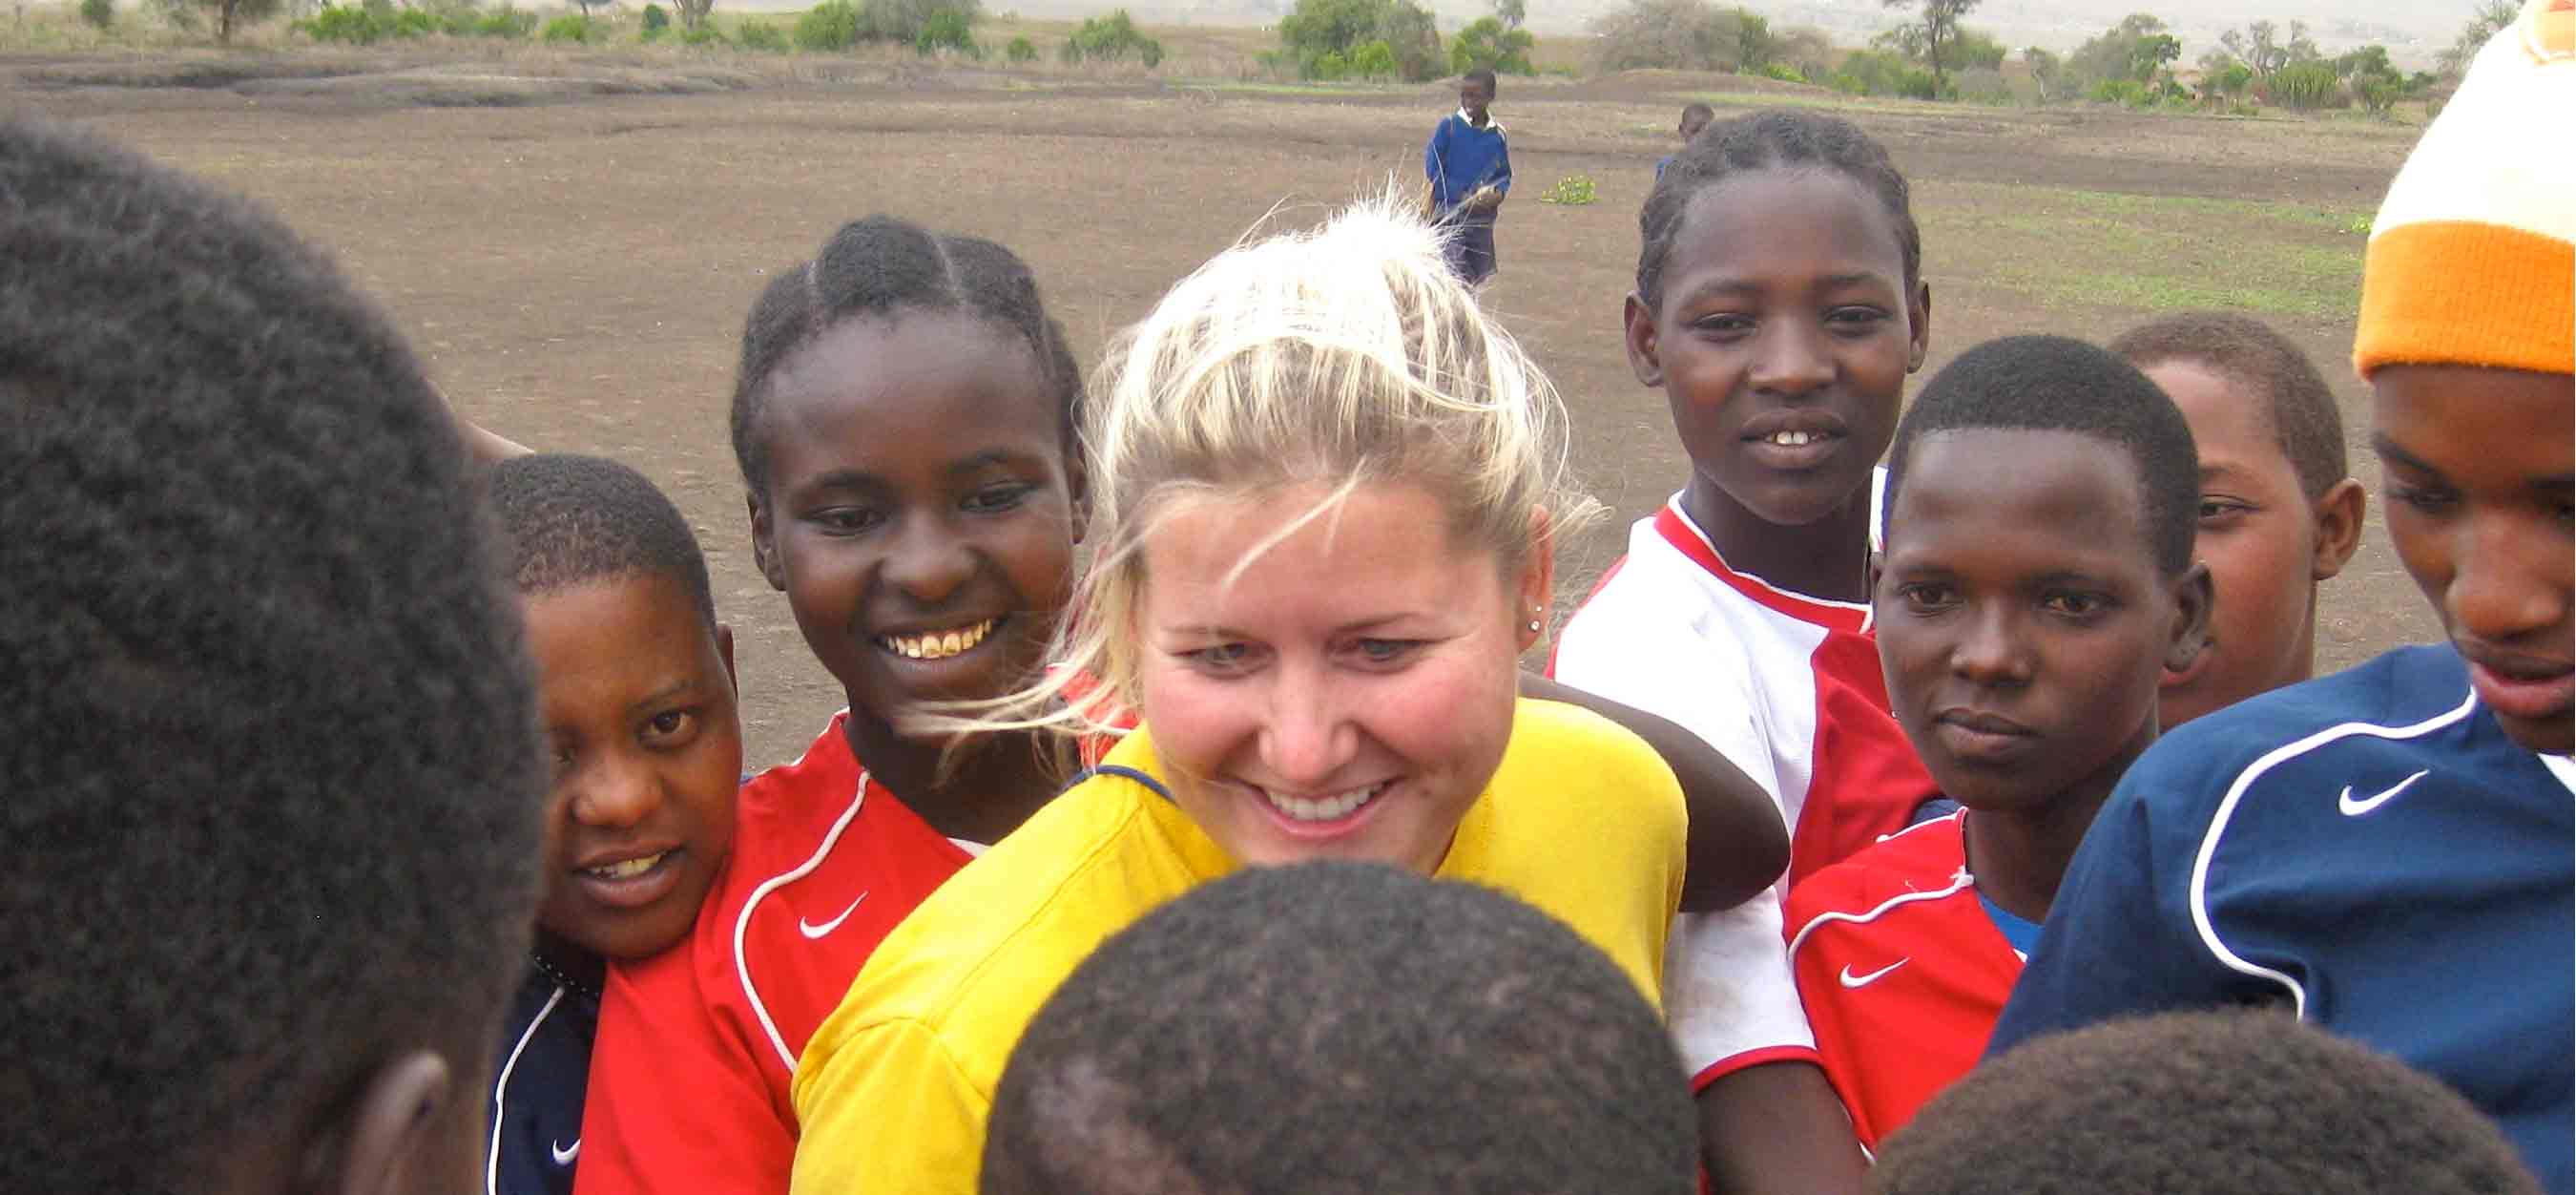 Ashley playing soccer with kids in the village